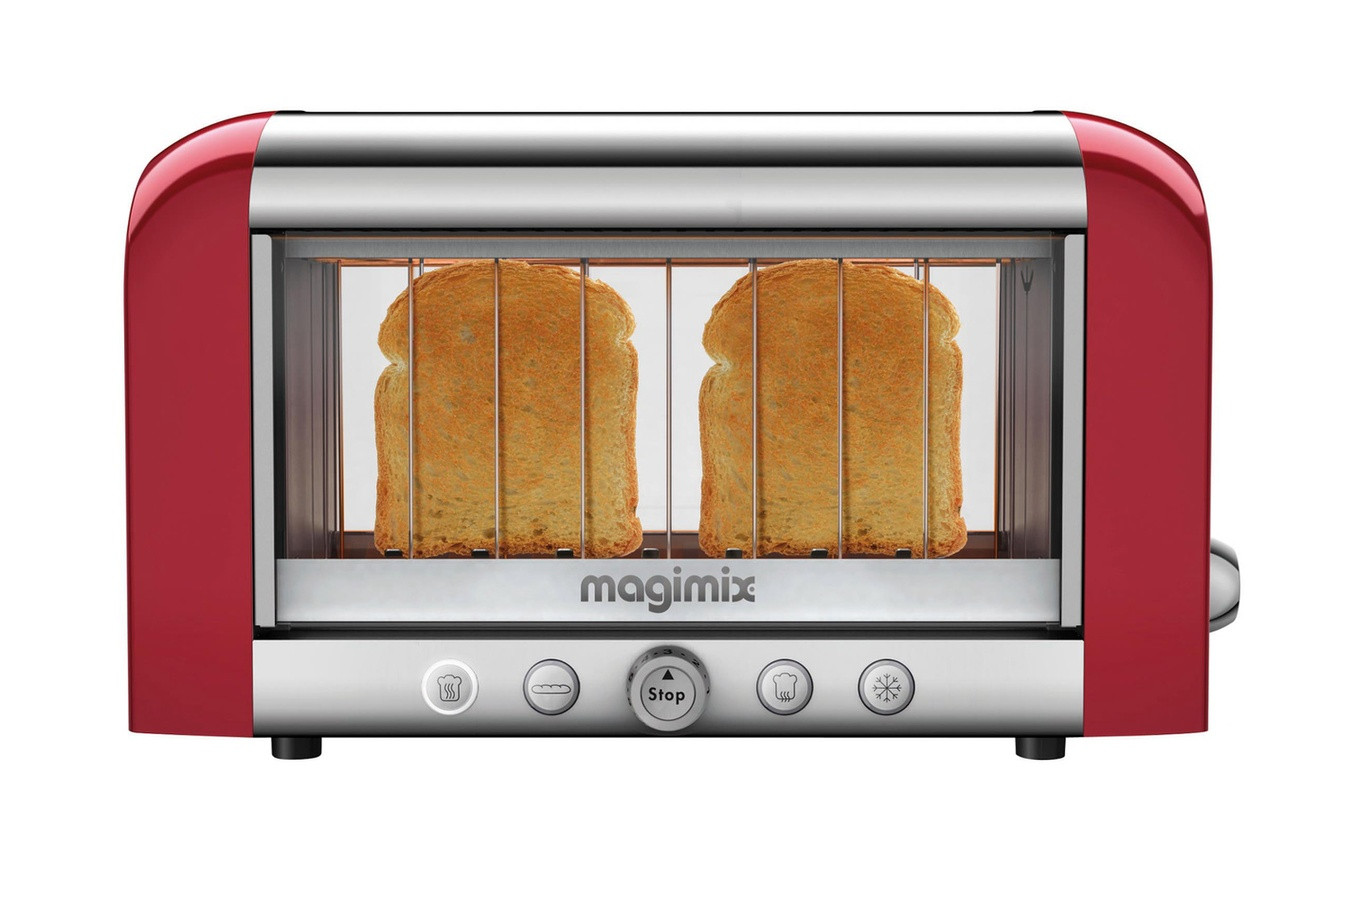 MAGIMIX TOAST.VISION.4TR.XL.1450W.ROUGE.